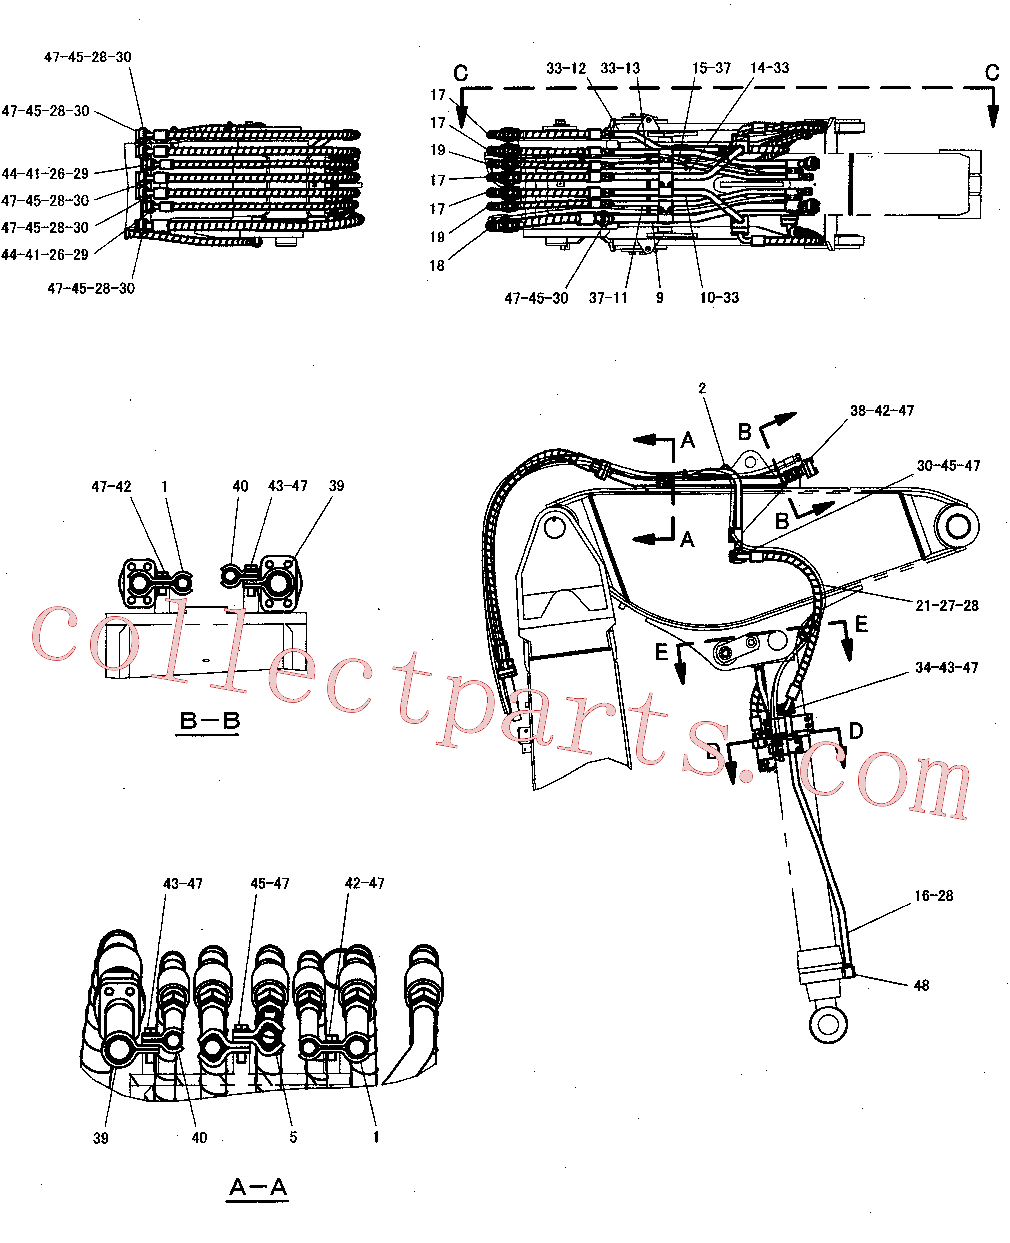 CAT 263-4715 for 345C Excavator(EXC) hydraulic system 300-8170 Assembly